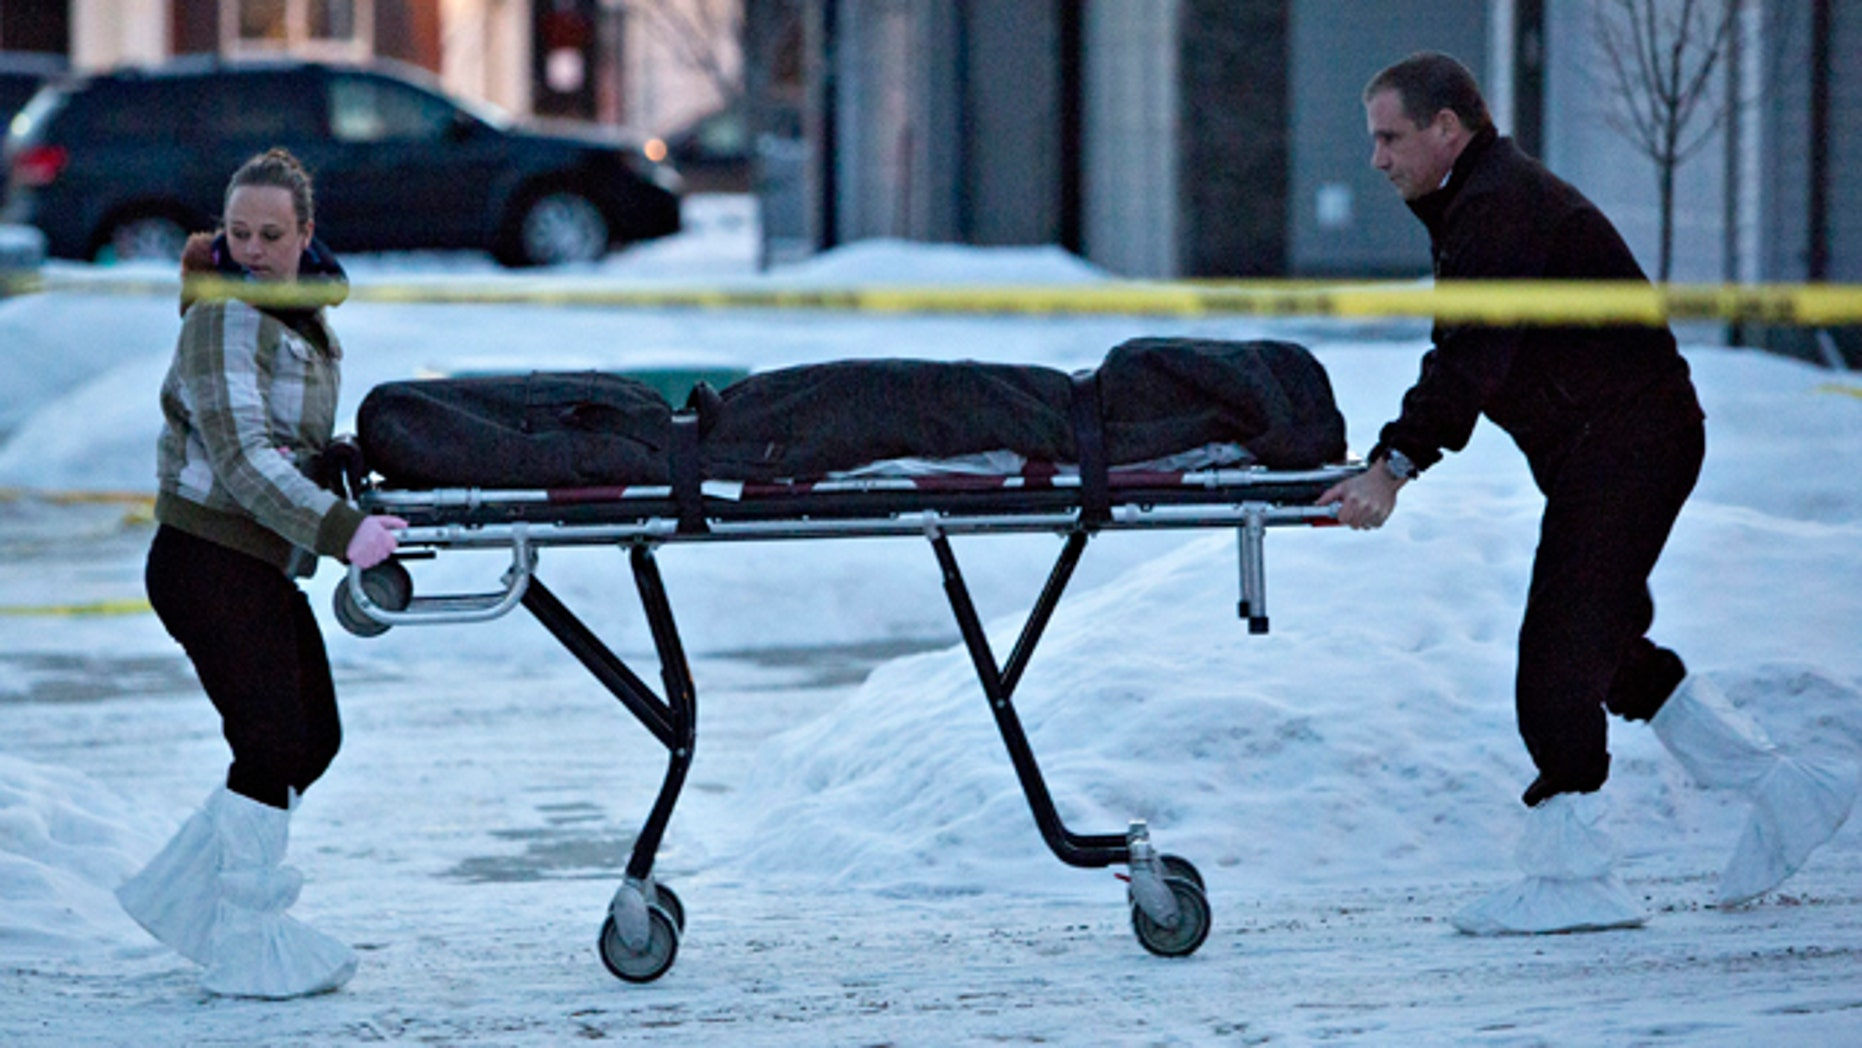 Dec. 30, 2014: The body of a victim is carried out of a north Edmonton home in Edmonton, Alberta, Canada. Nine people, including seven adults and two young children, were found dead at three separate crime scenes in what Edmonton's police chief on Tuesday called a 'senseless mass murder.' (AP Photo/The Canadian Press, Jason Franson)